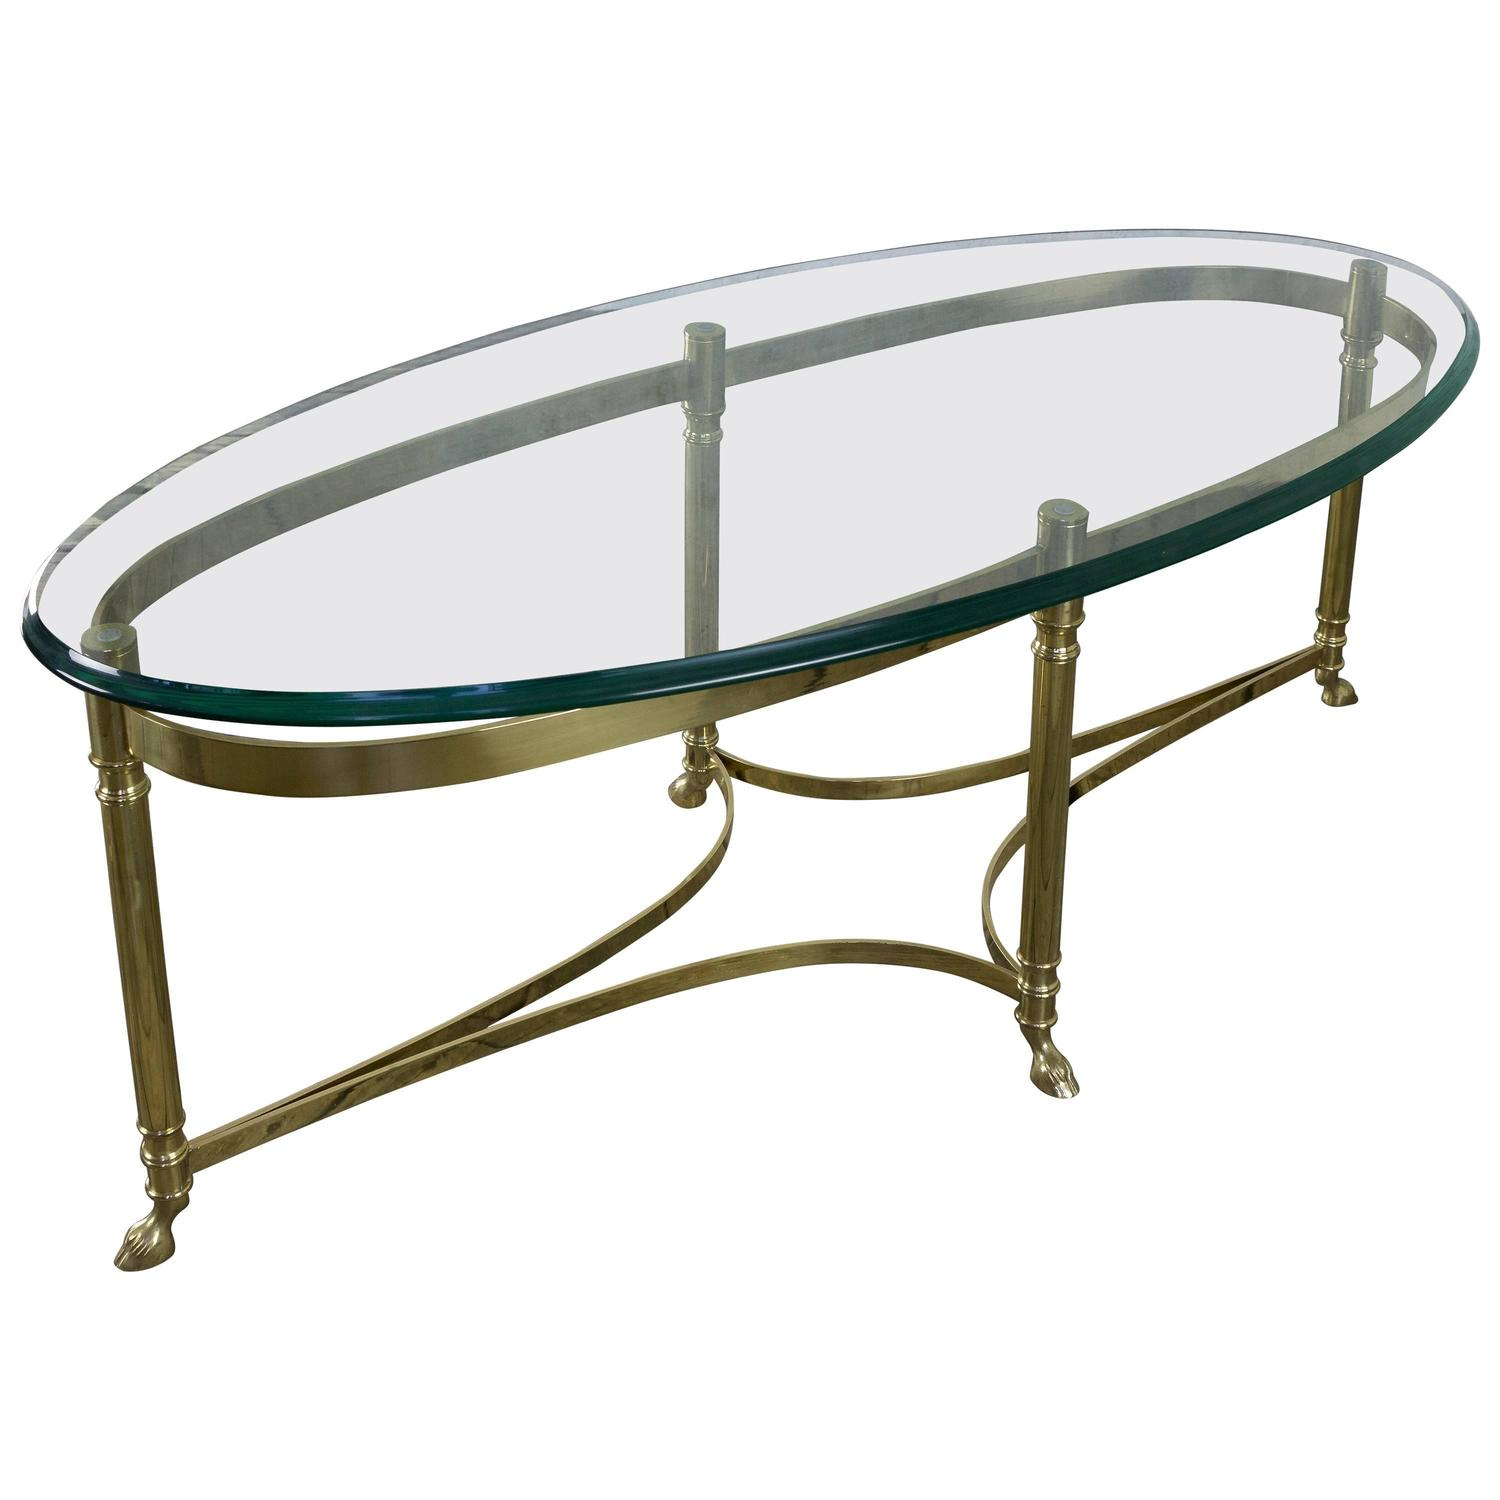 Italian Oval Brass And Glass Coffee Table 1940s At 1stdibs